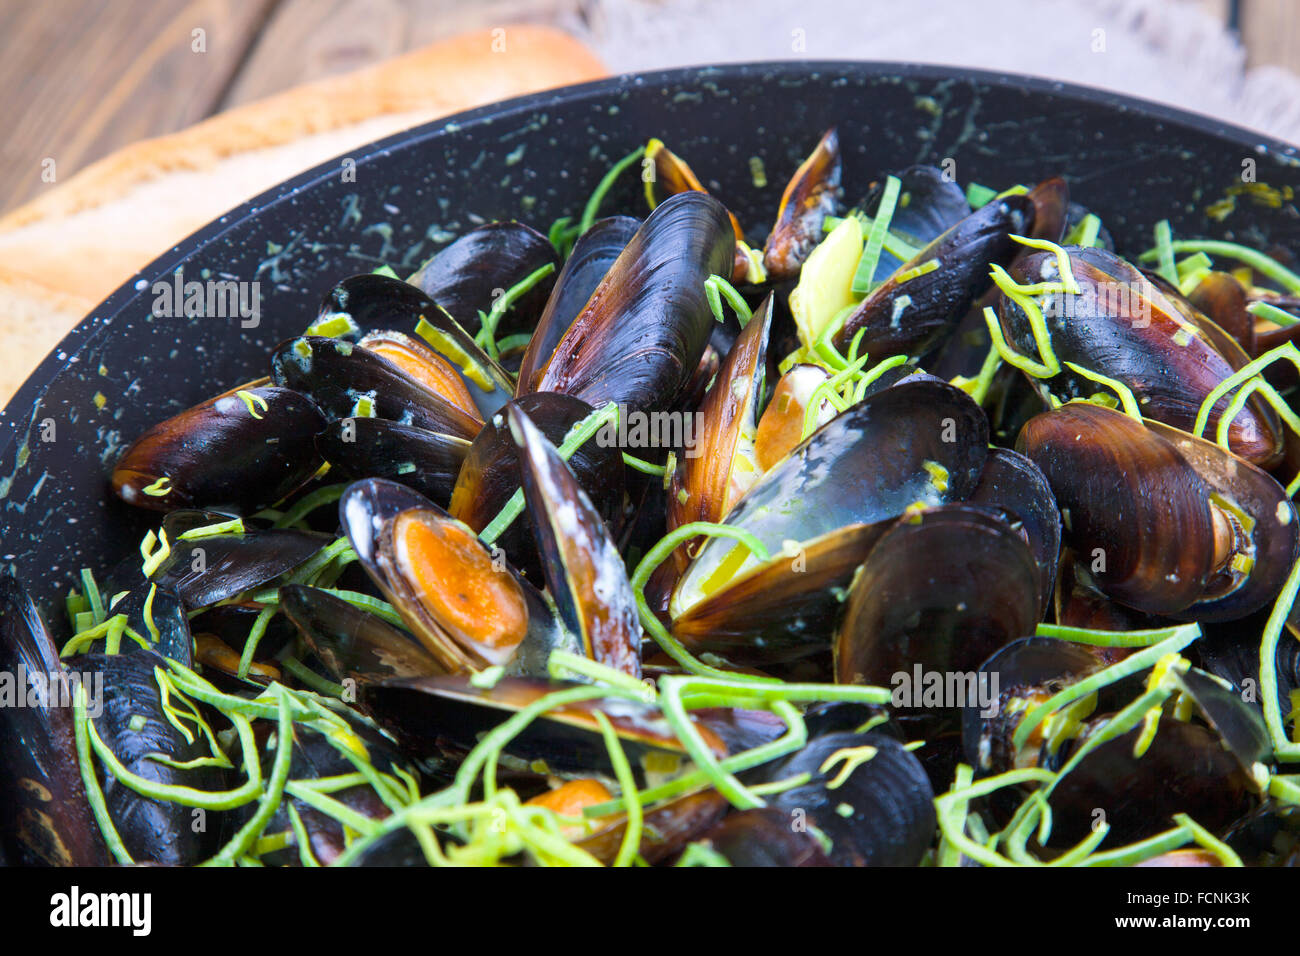 Mussels cooked in wine - Stock Image